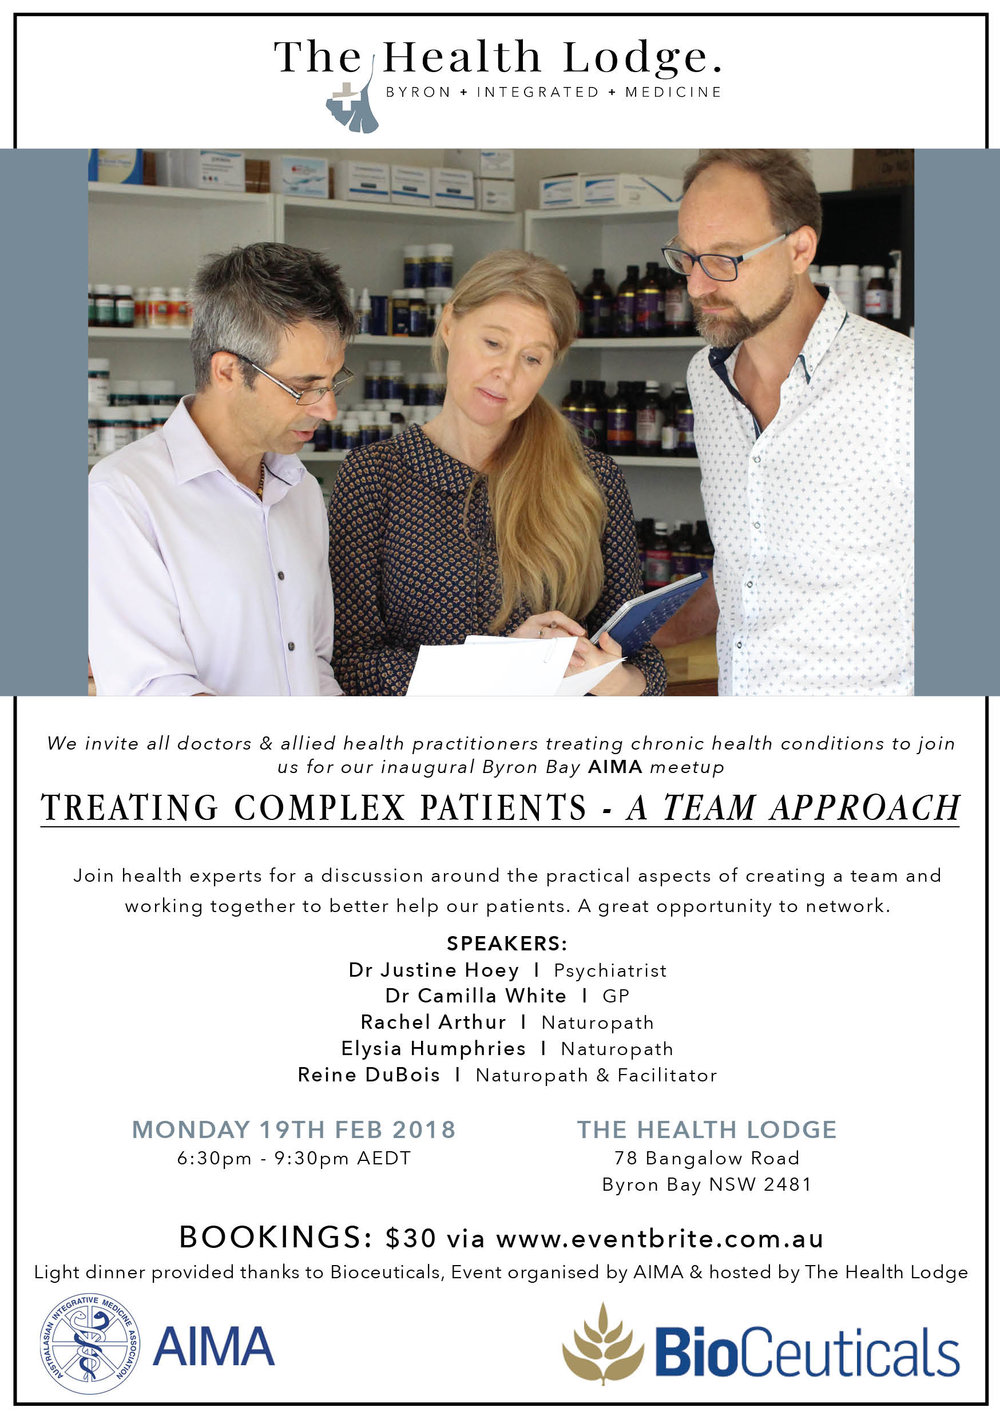 February 2018 - Treating Complex Patients: A Team Approach